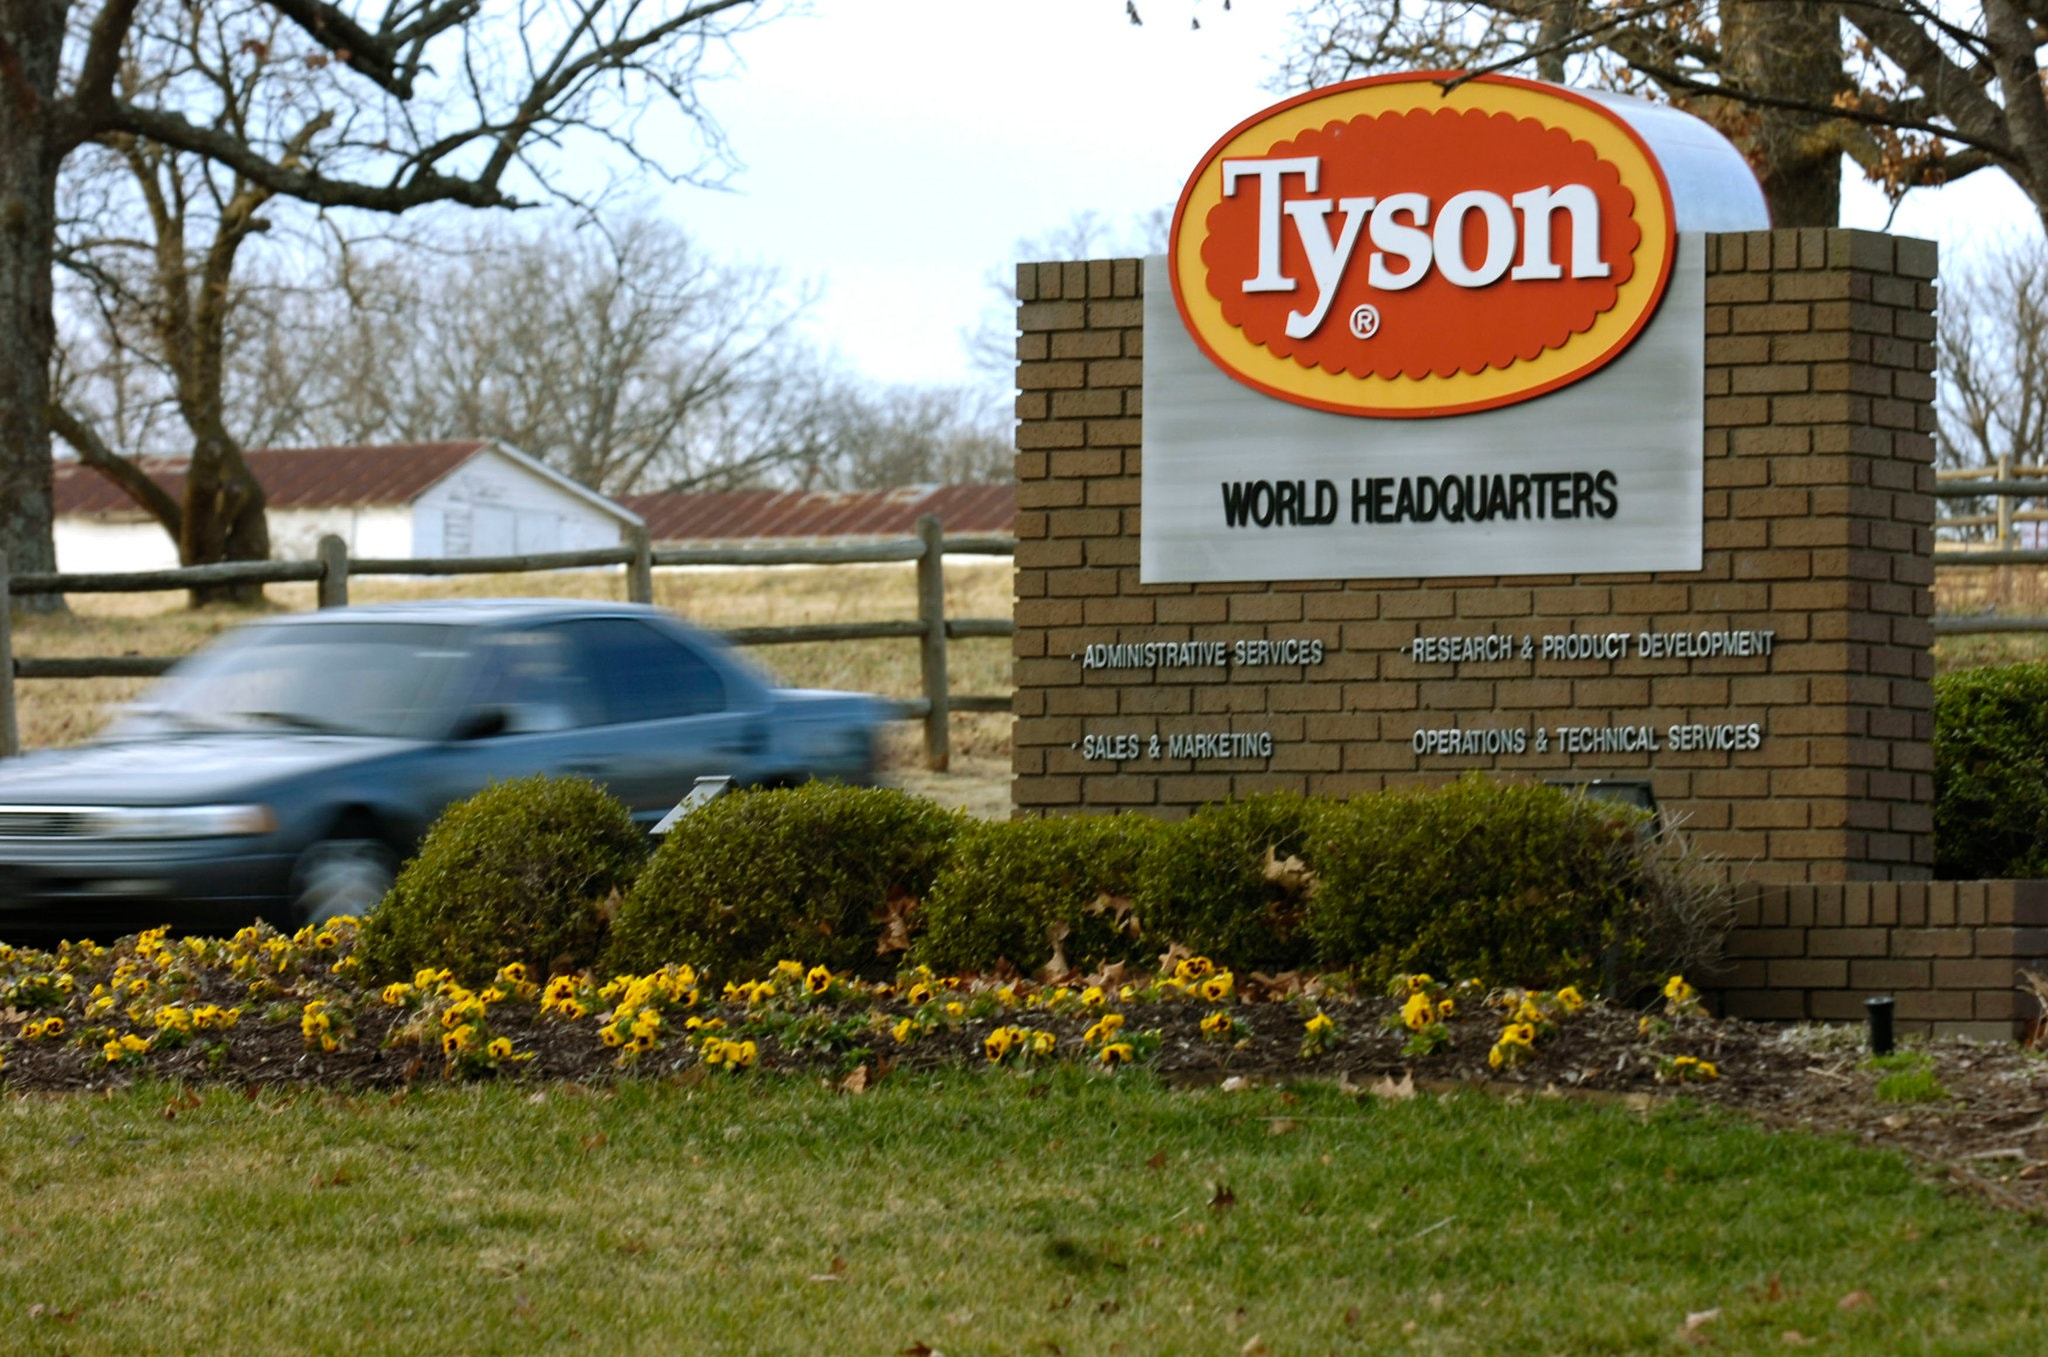 An image of the outside of Tyson World Headquarters